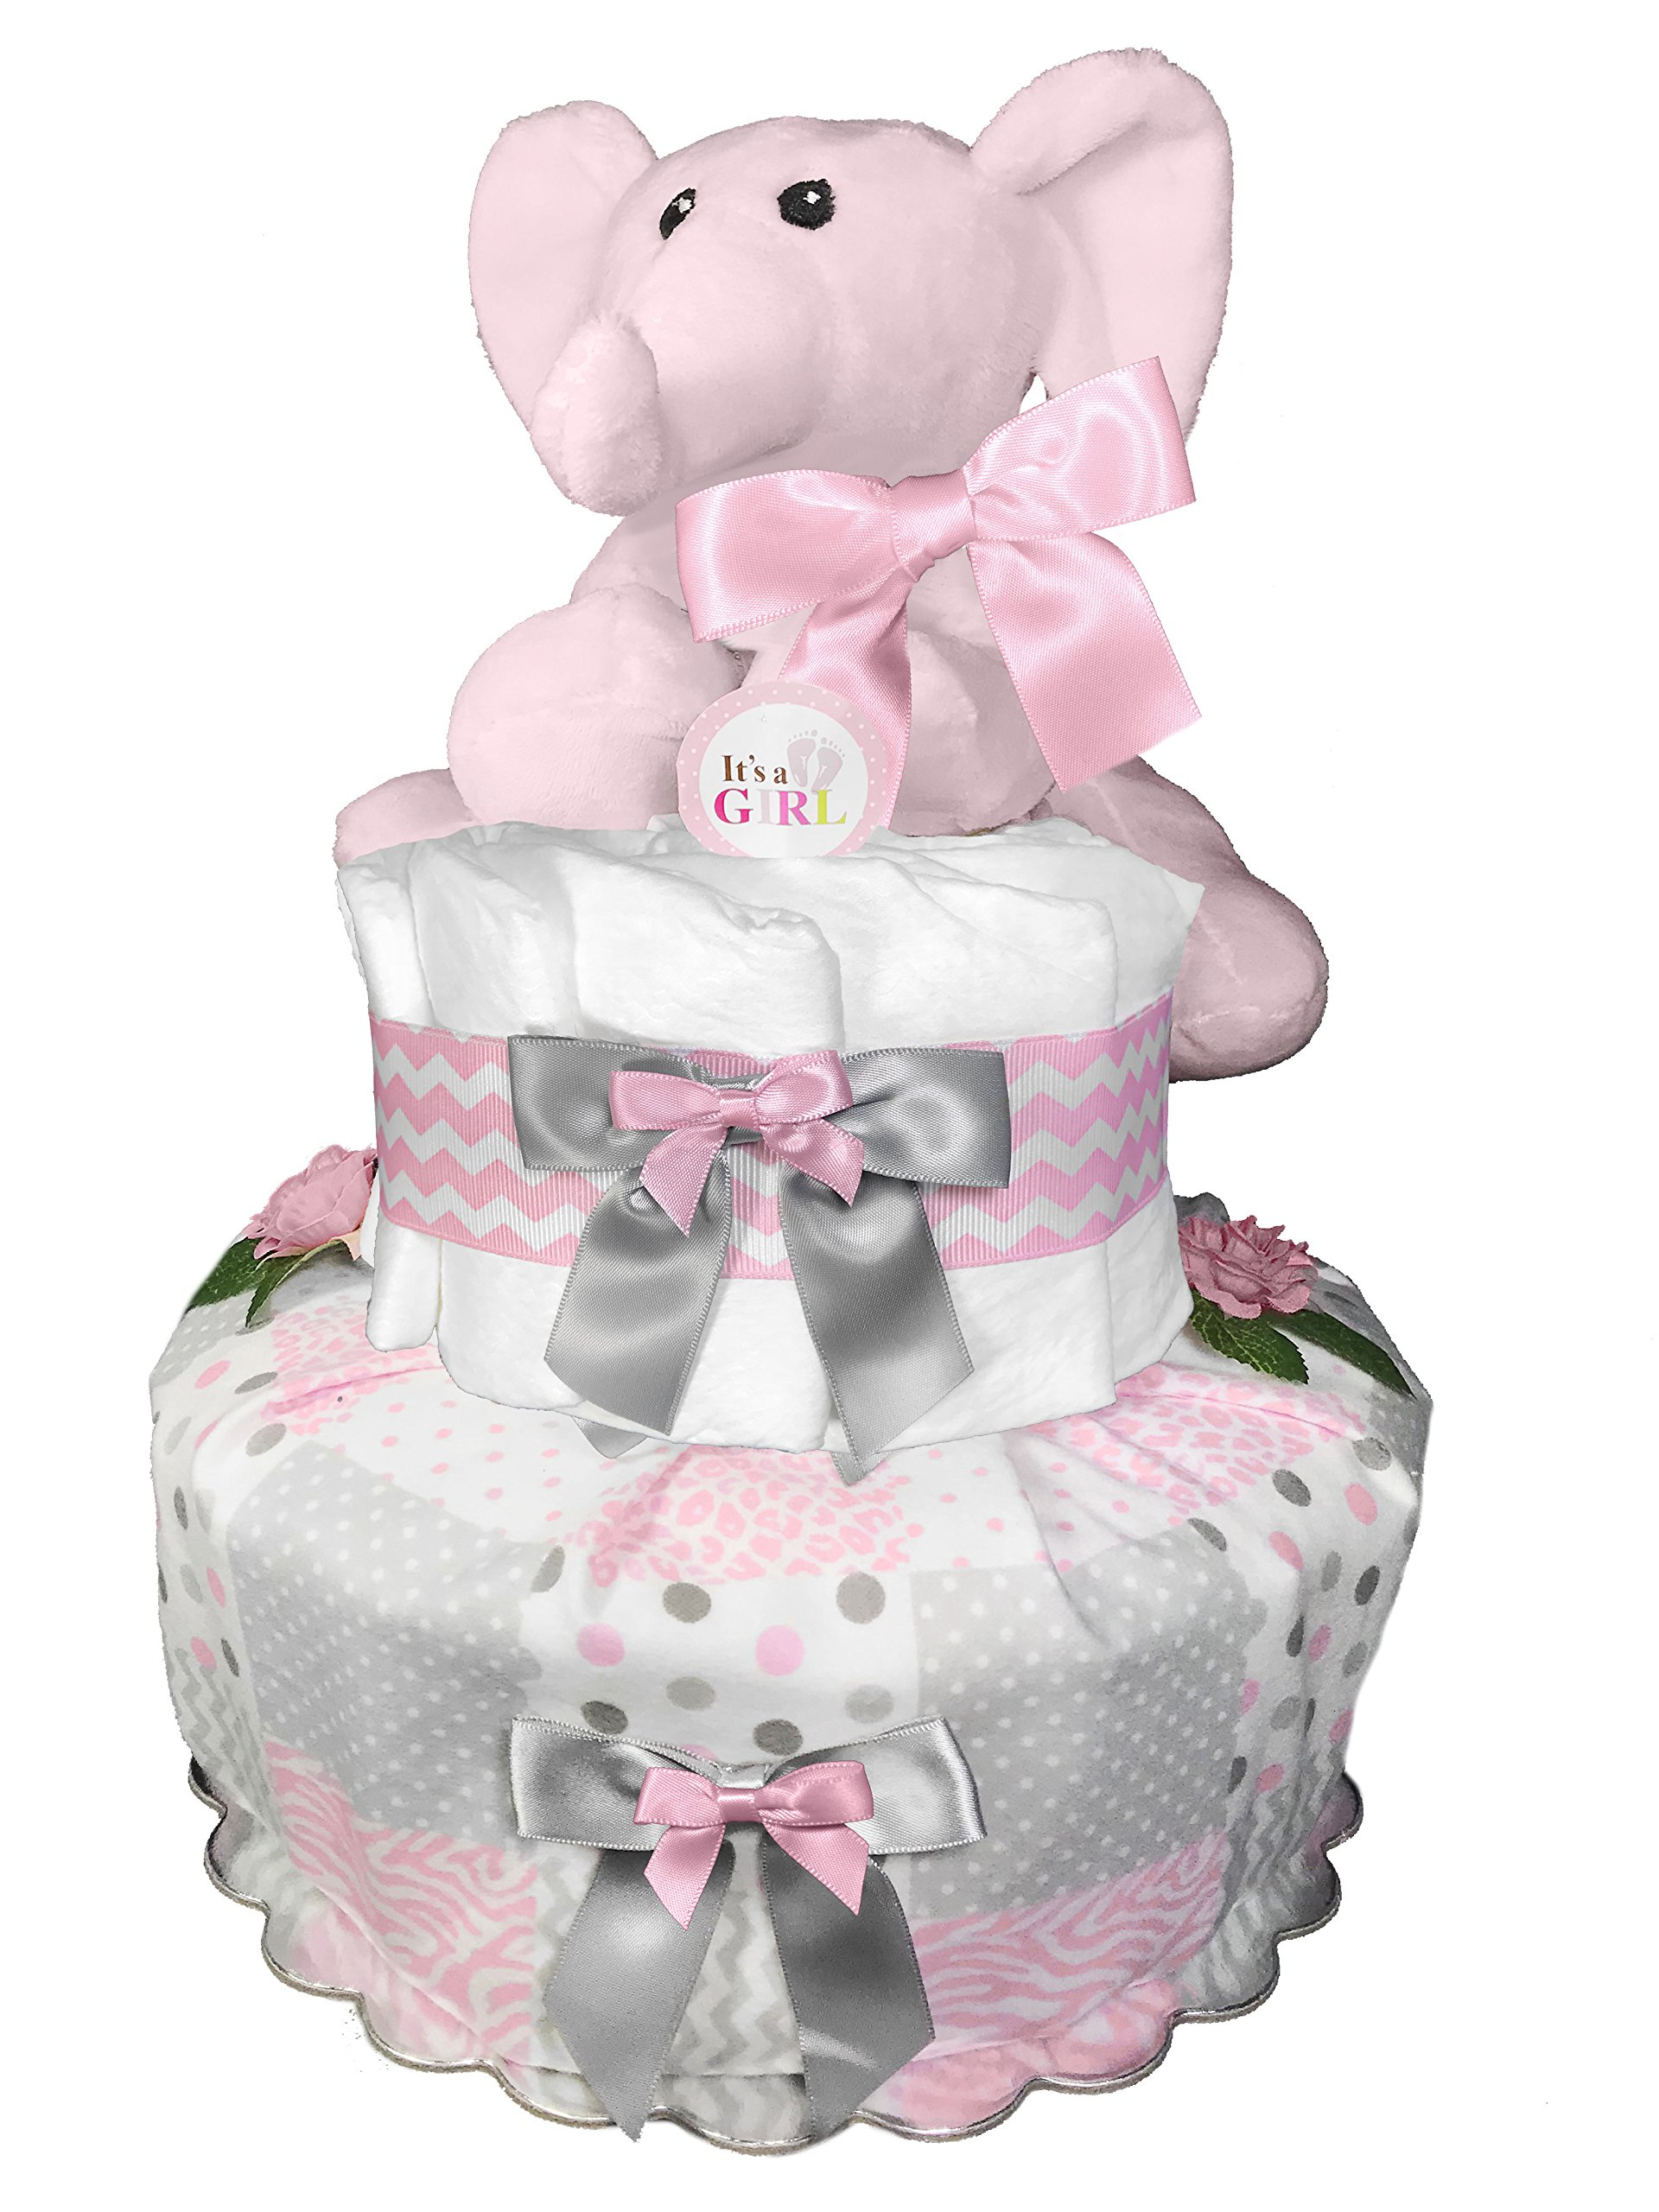 Elephant Diaper Cake for a Girl - Newborn Gift Set - Baby Shower Centerpiece - Chevron Pink and Gray